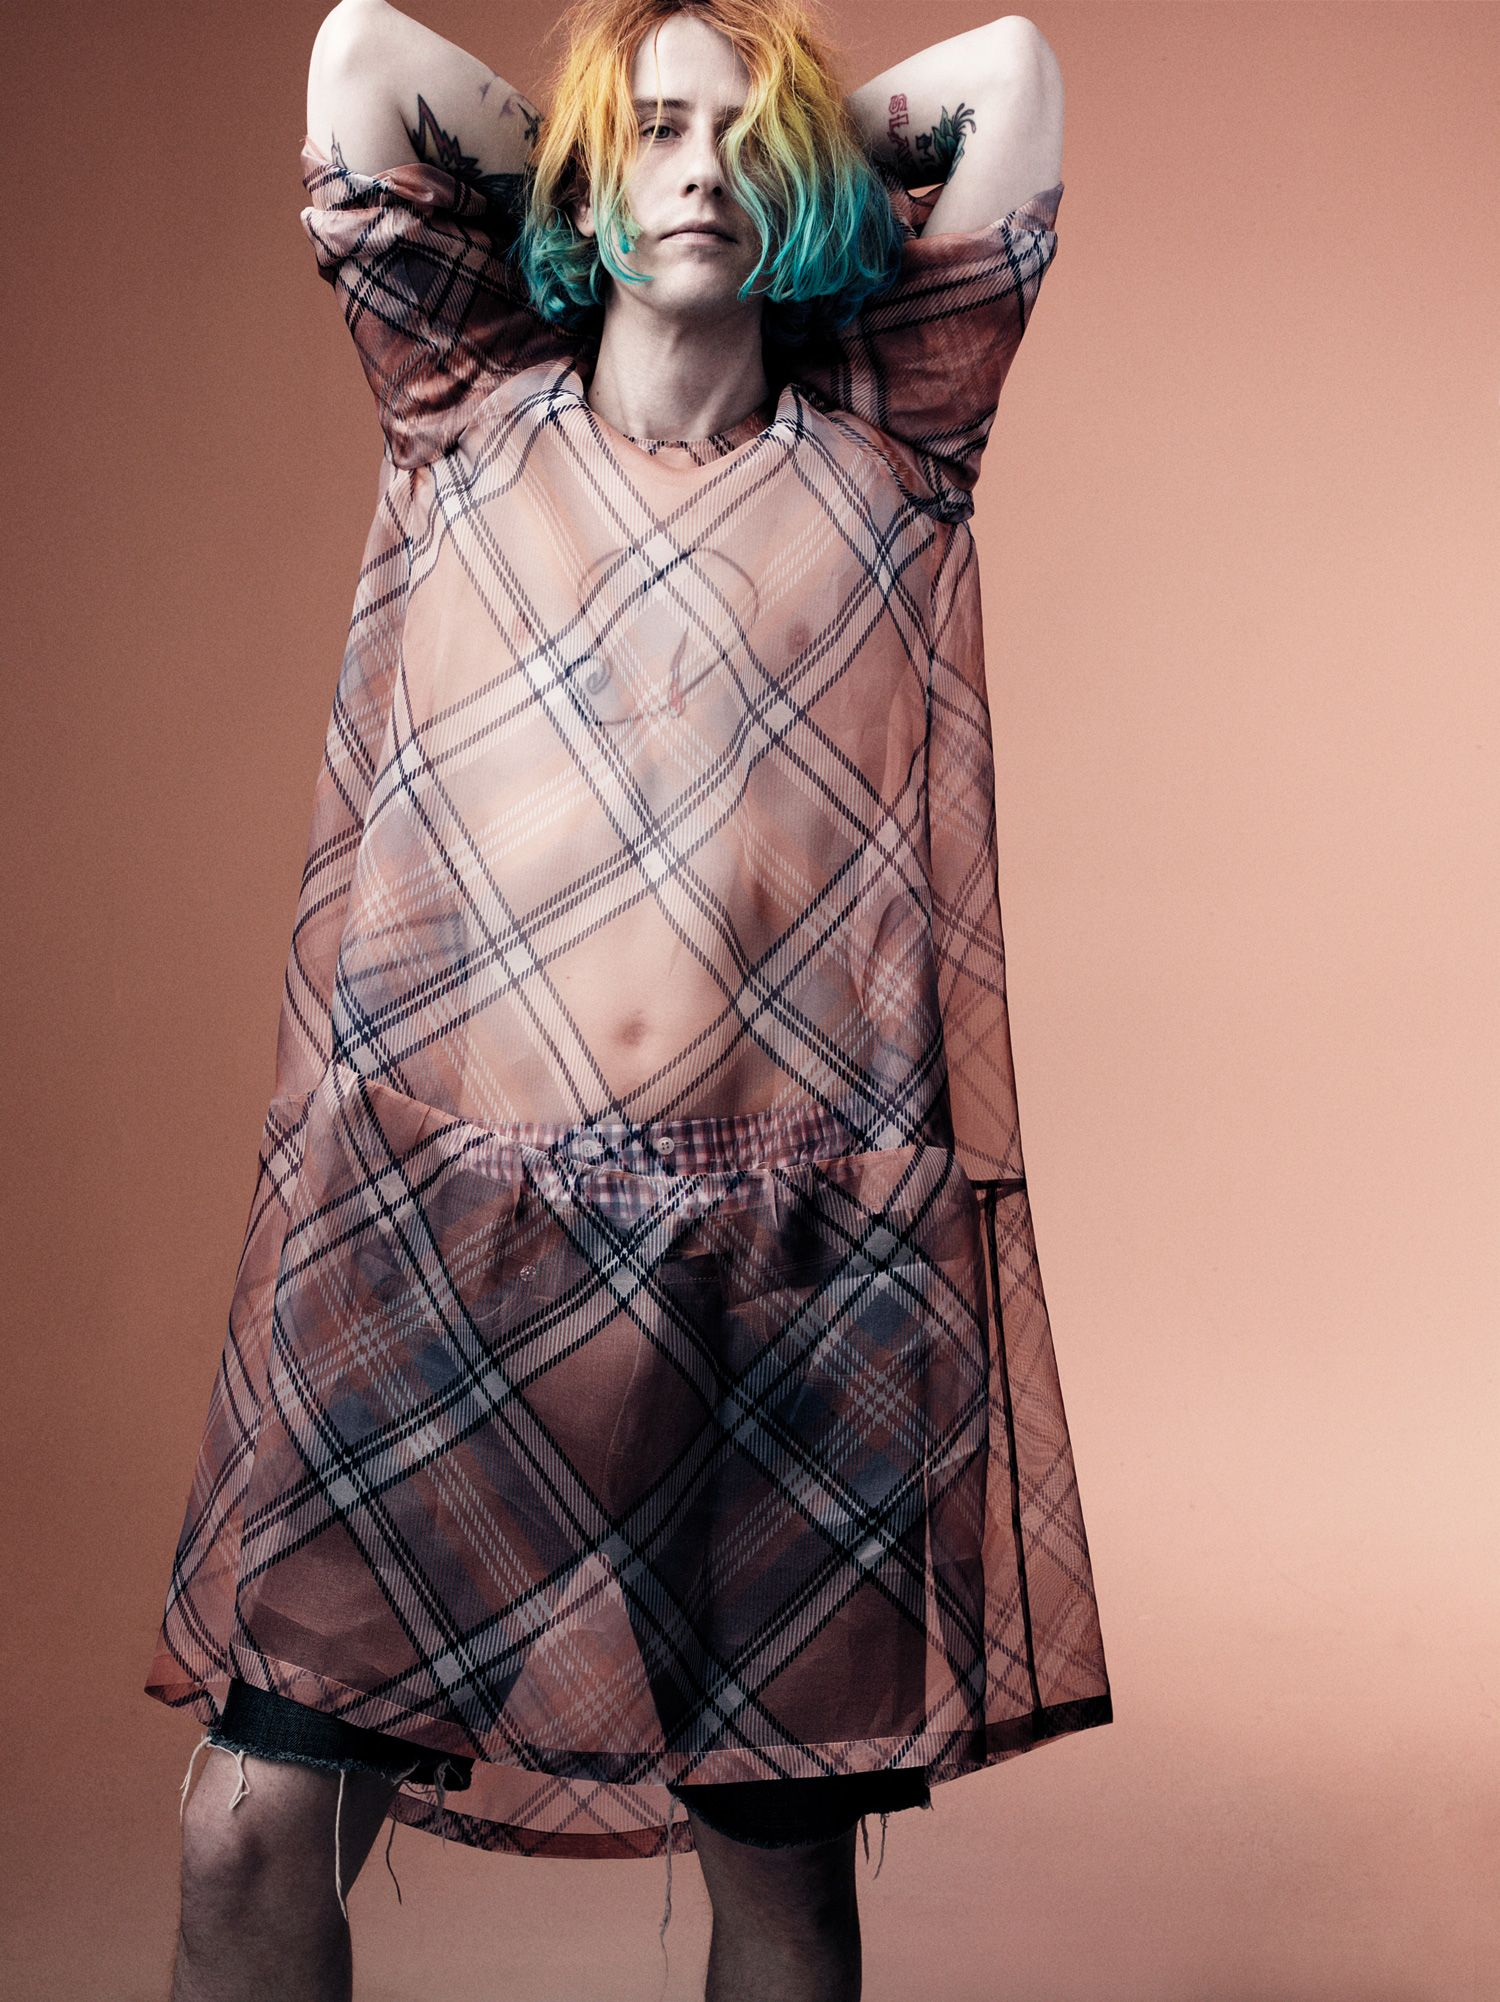 christopher owens for interview magazine . Photography CRAIG MCDEAN Stylist KARL TEMPLER